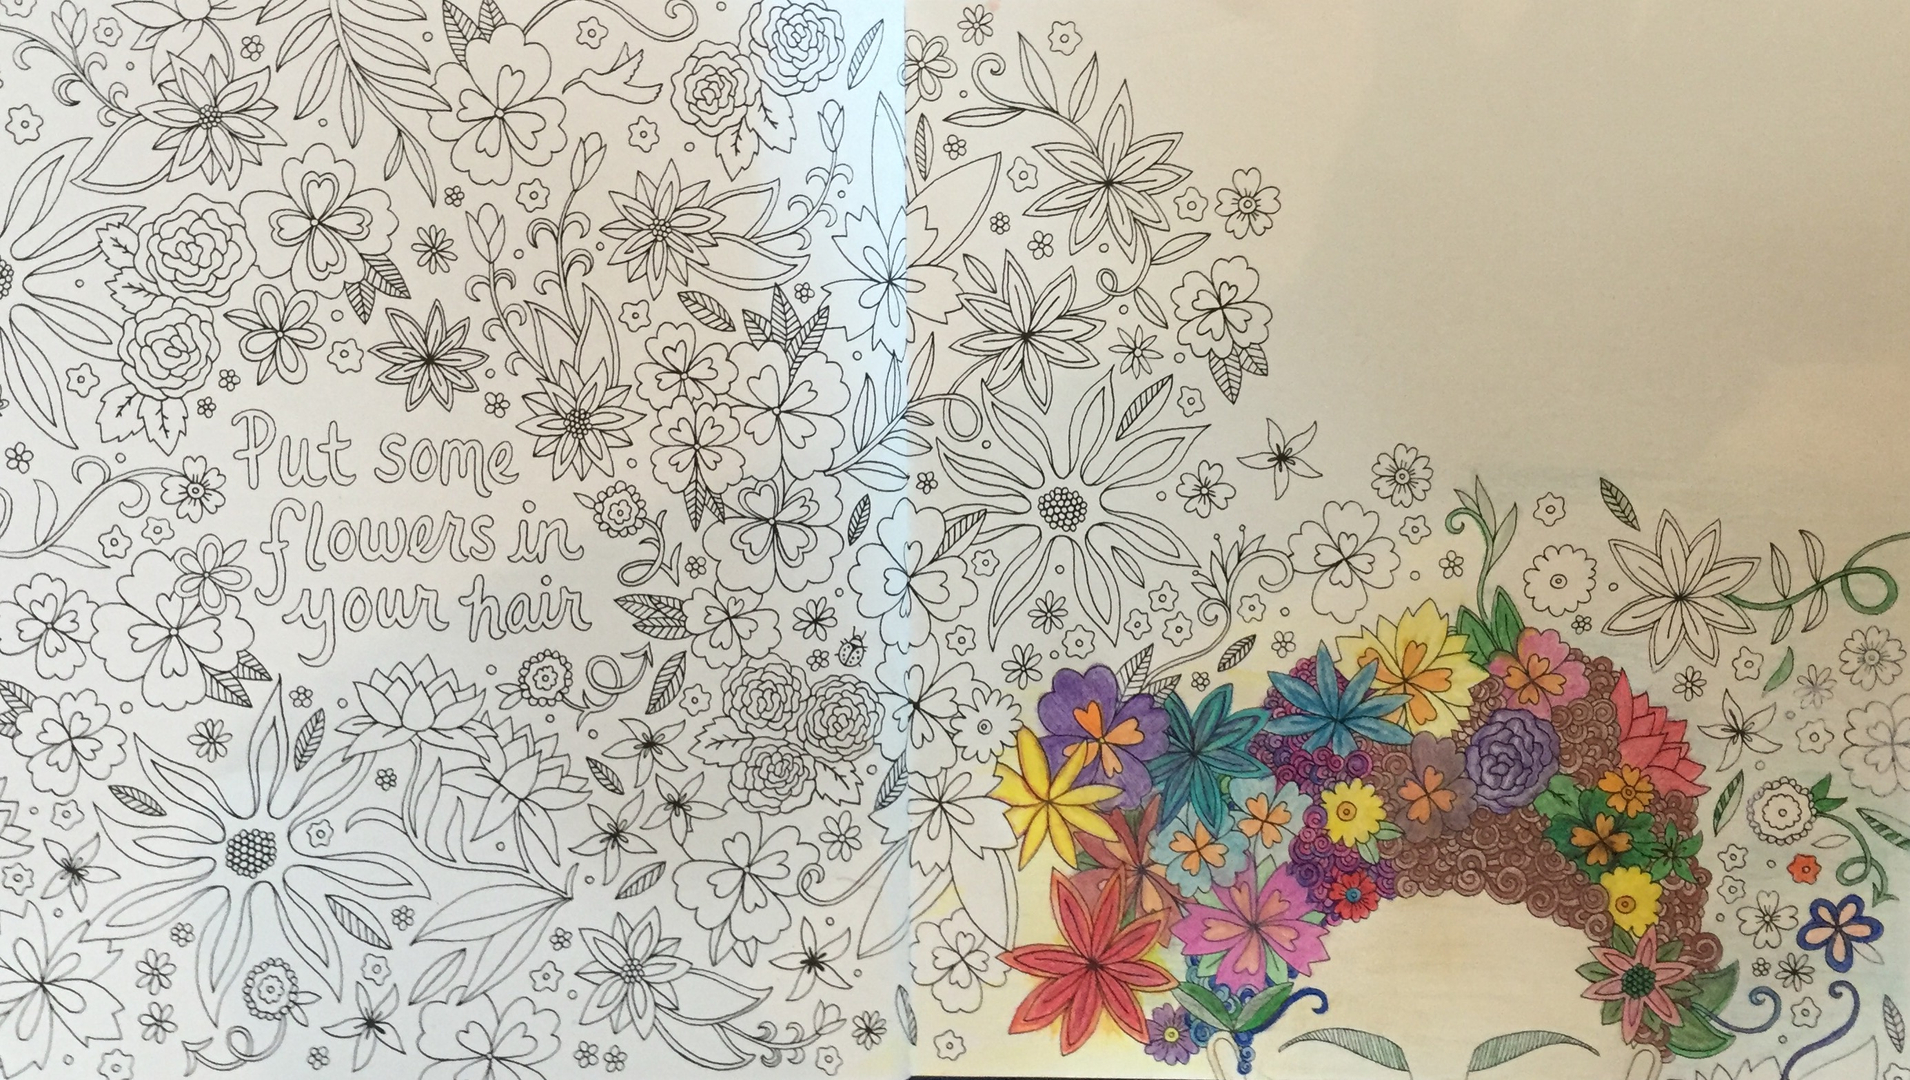 This Has Been One Of My Favorite Coloring Books Since Its Release I Love The Whimsical Looks Every Page And Many Different Styles To Choose From